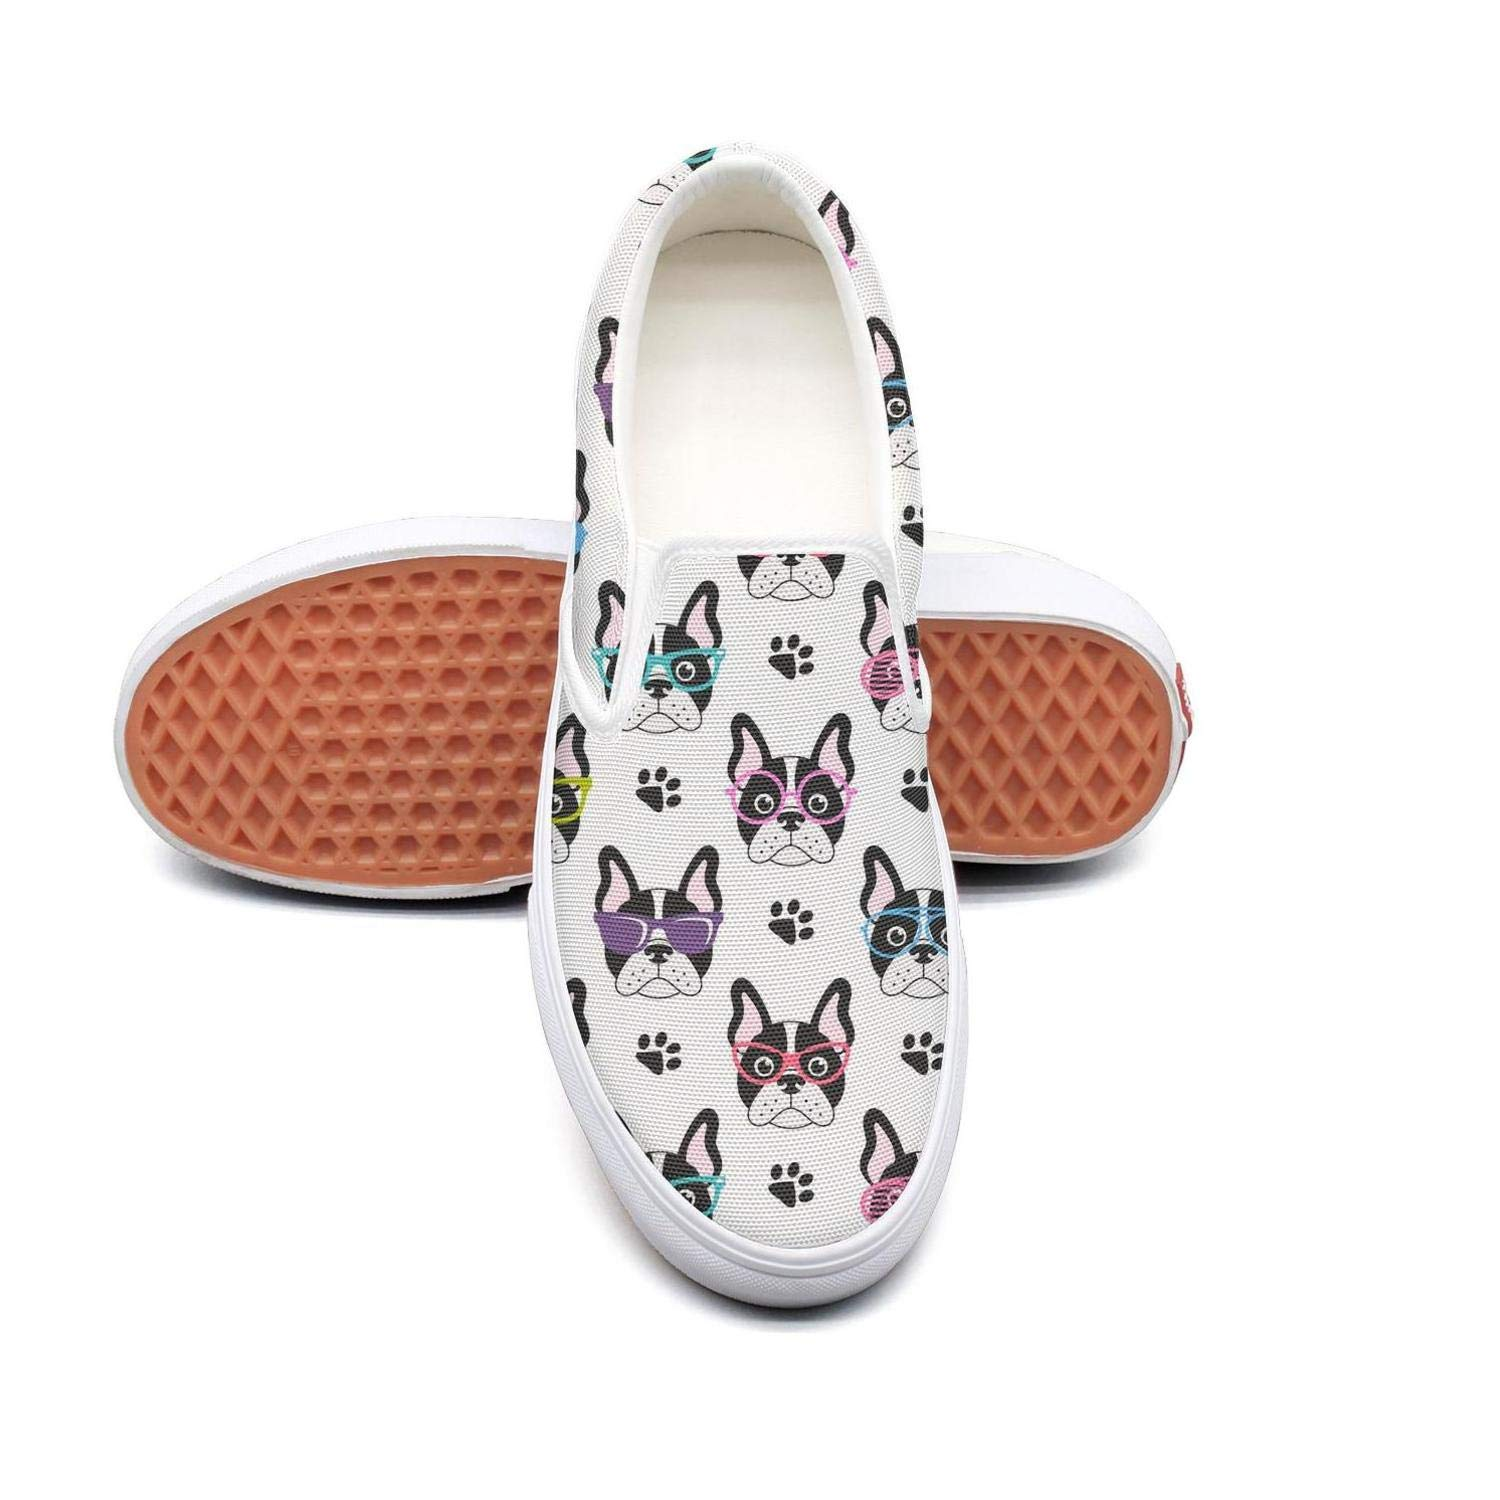 PDAQS Women french bulldogs with glasses white loafers slip on shoes low top